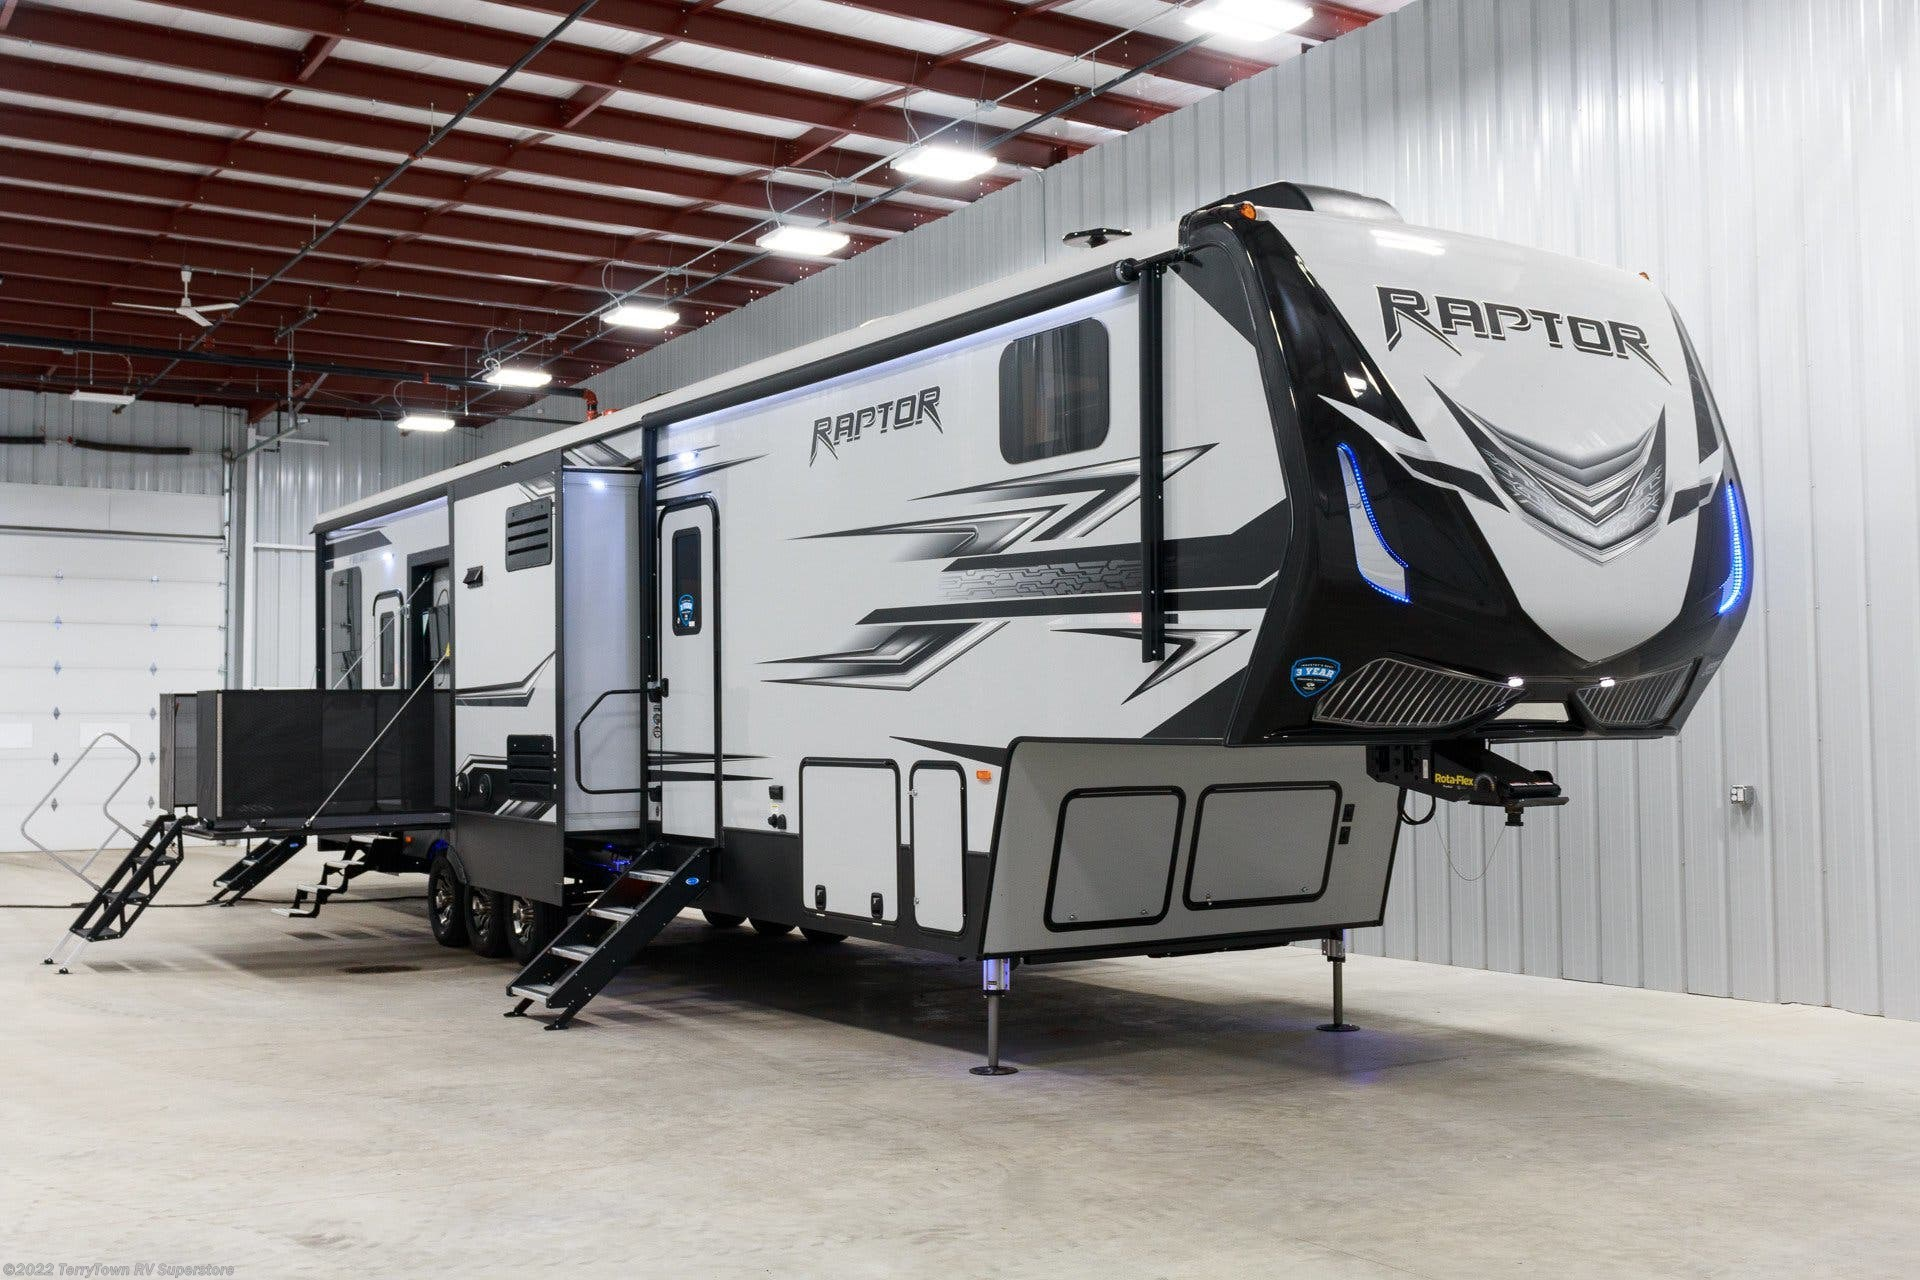 Raptor Rv Toy Hauler Wiring Diagram Library 2018 Keystone 428sp For Sale In Grand Rapids Mi 49548 Previous